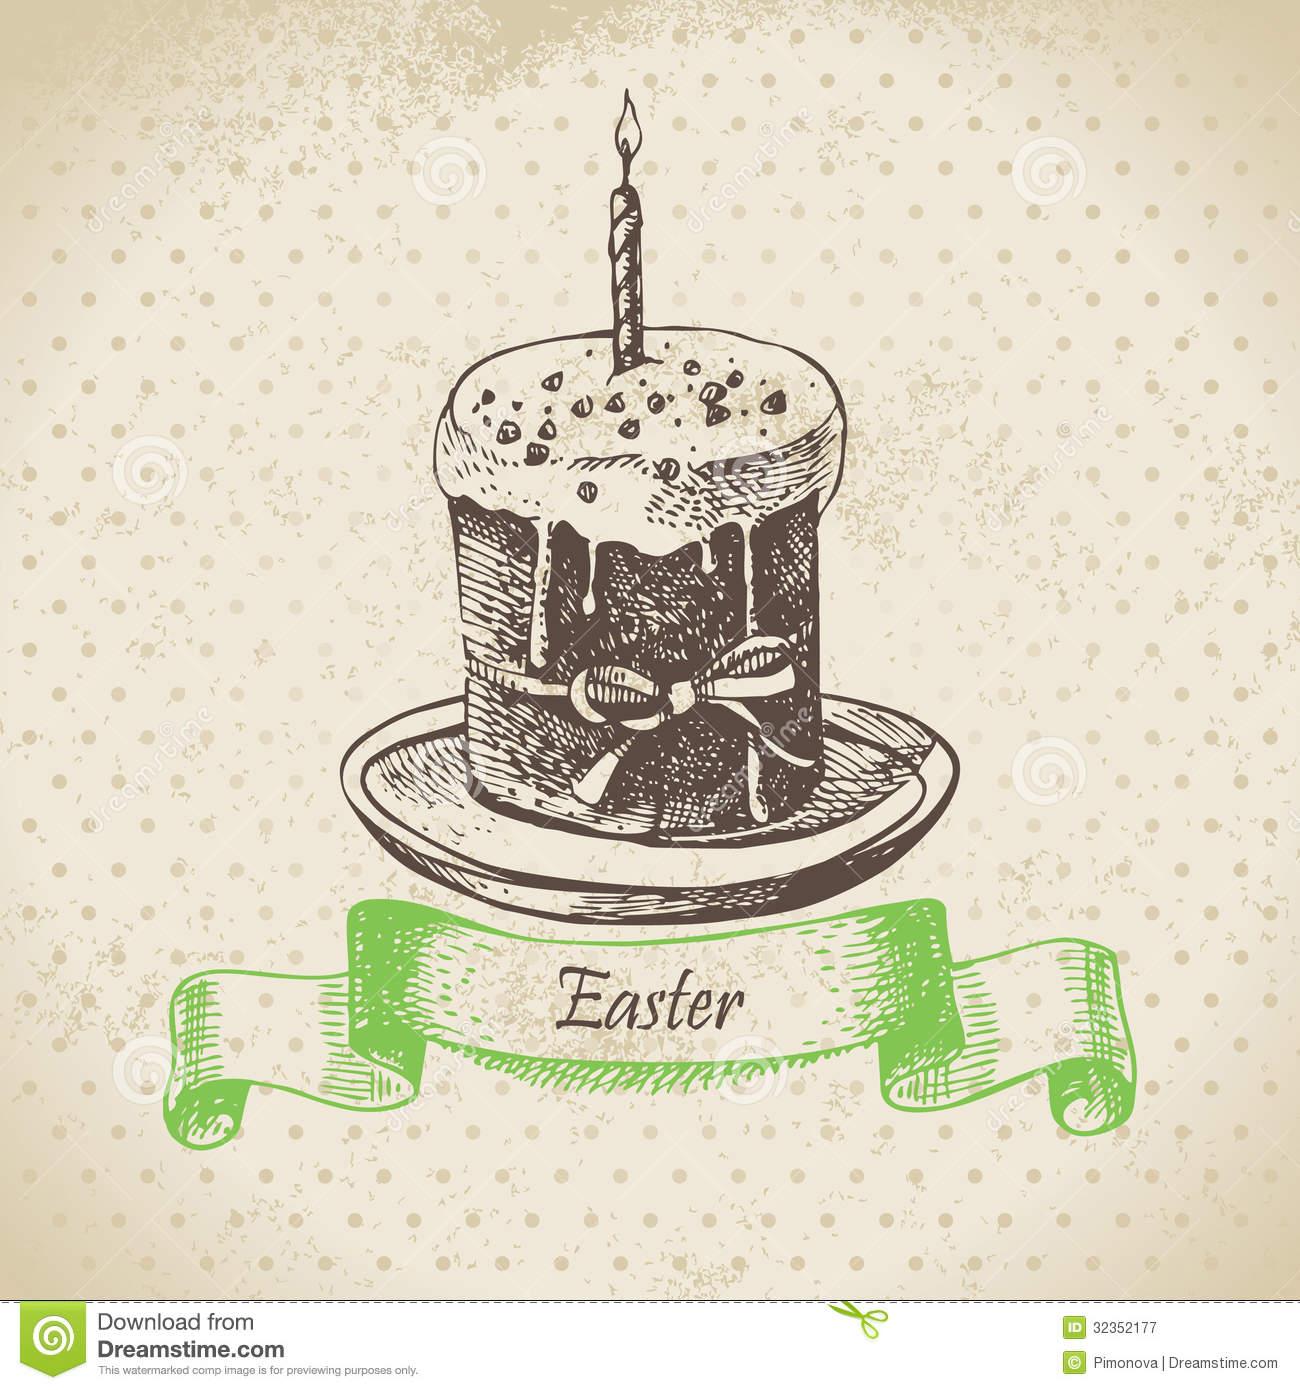 Vintage Background With Easter Cake Royalty Free Stock ...